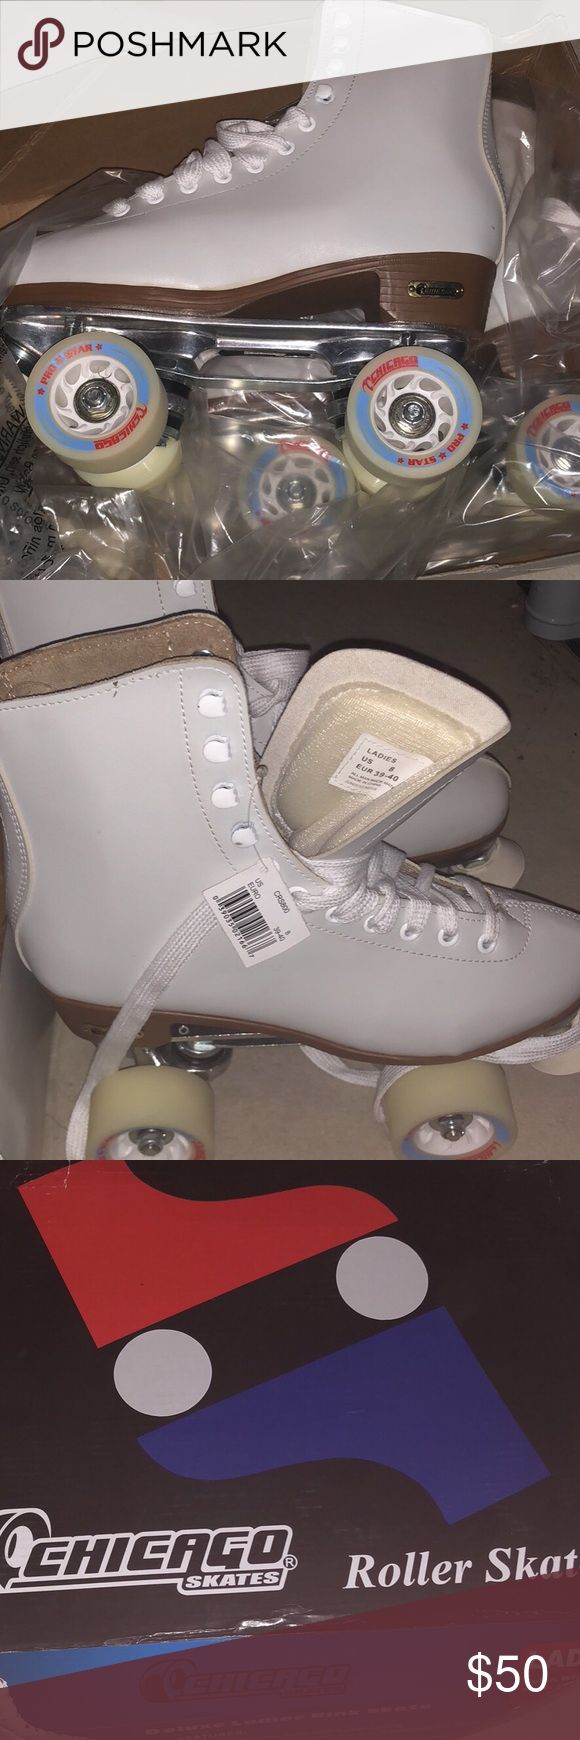 Chicago roller skates size 8 NWT Leather roller skates originally 80.00. Never worn, run large. May fit 8.5 or 9. Other